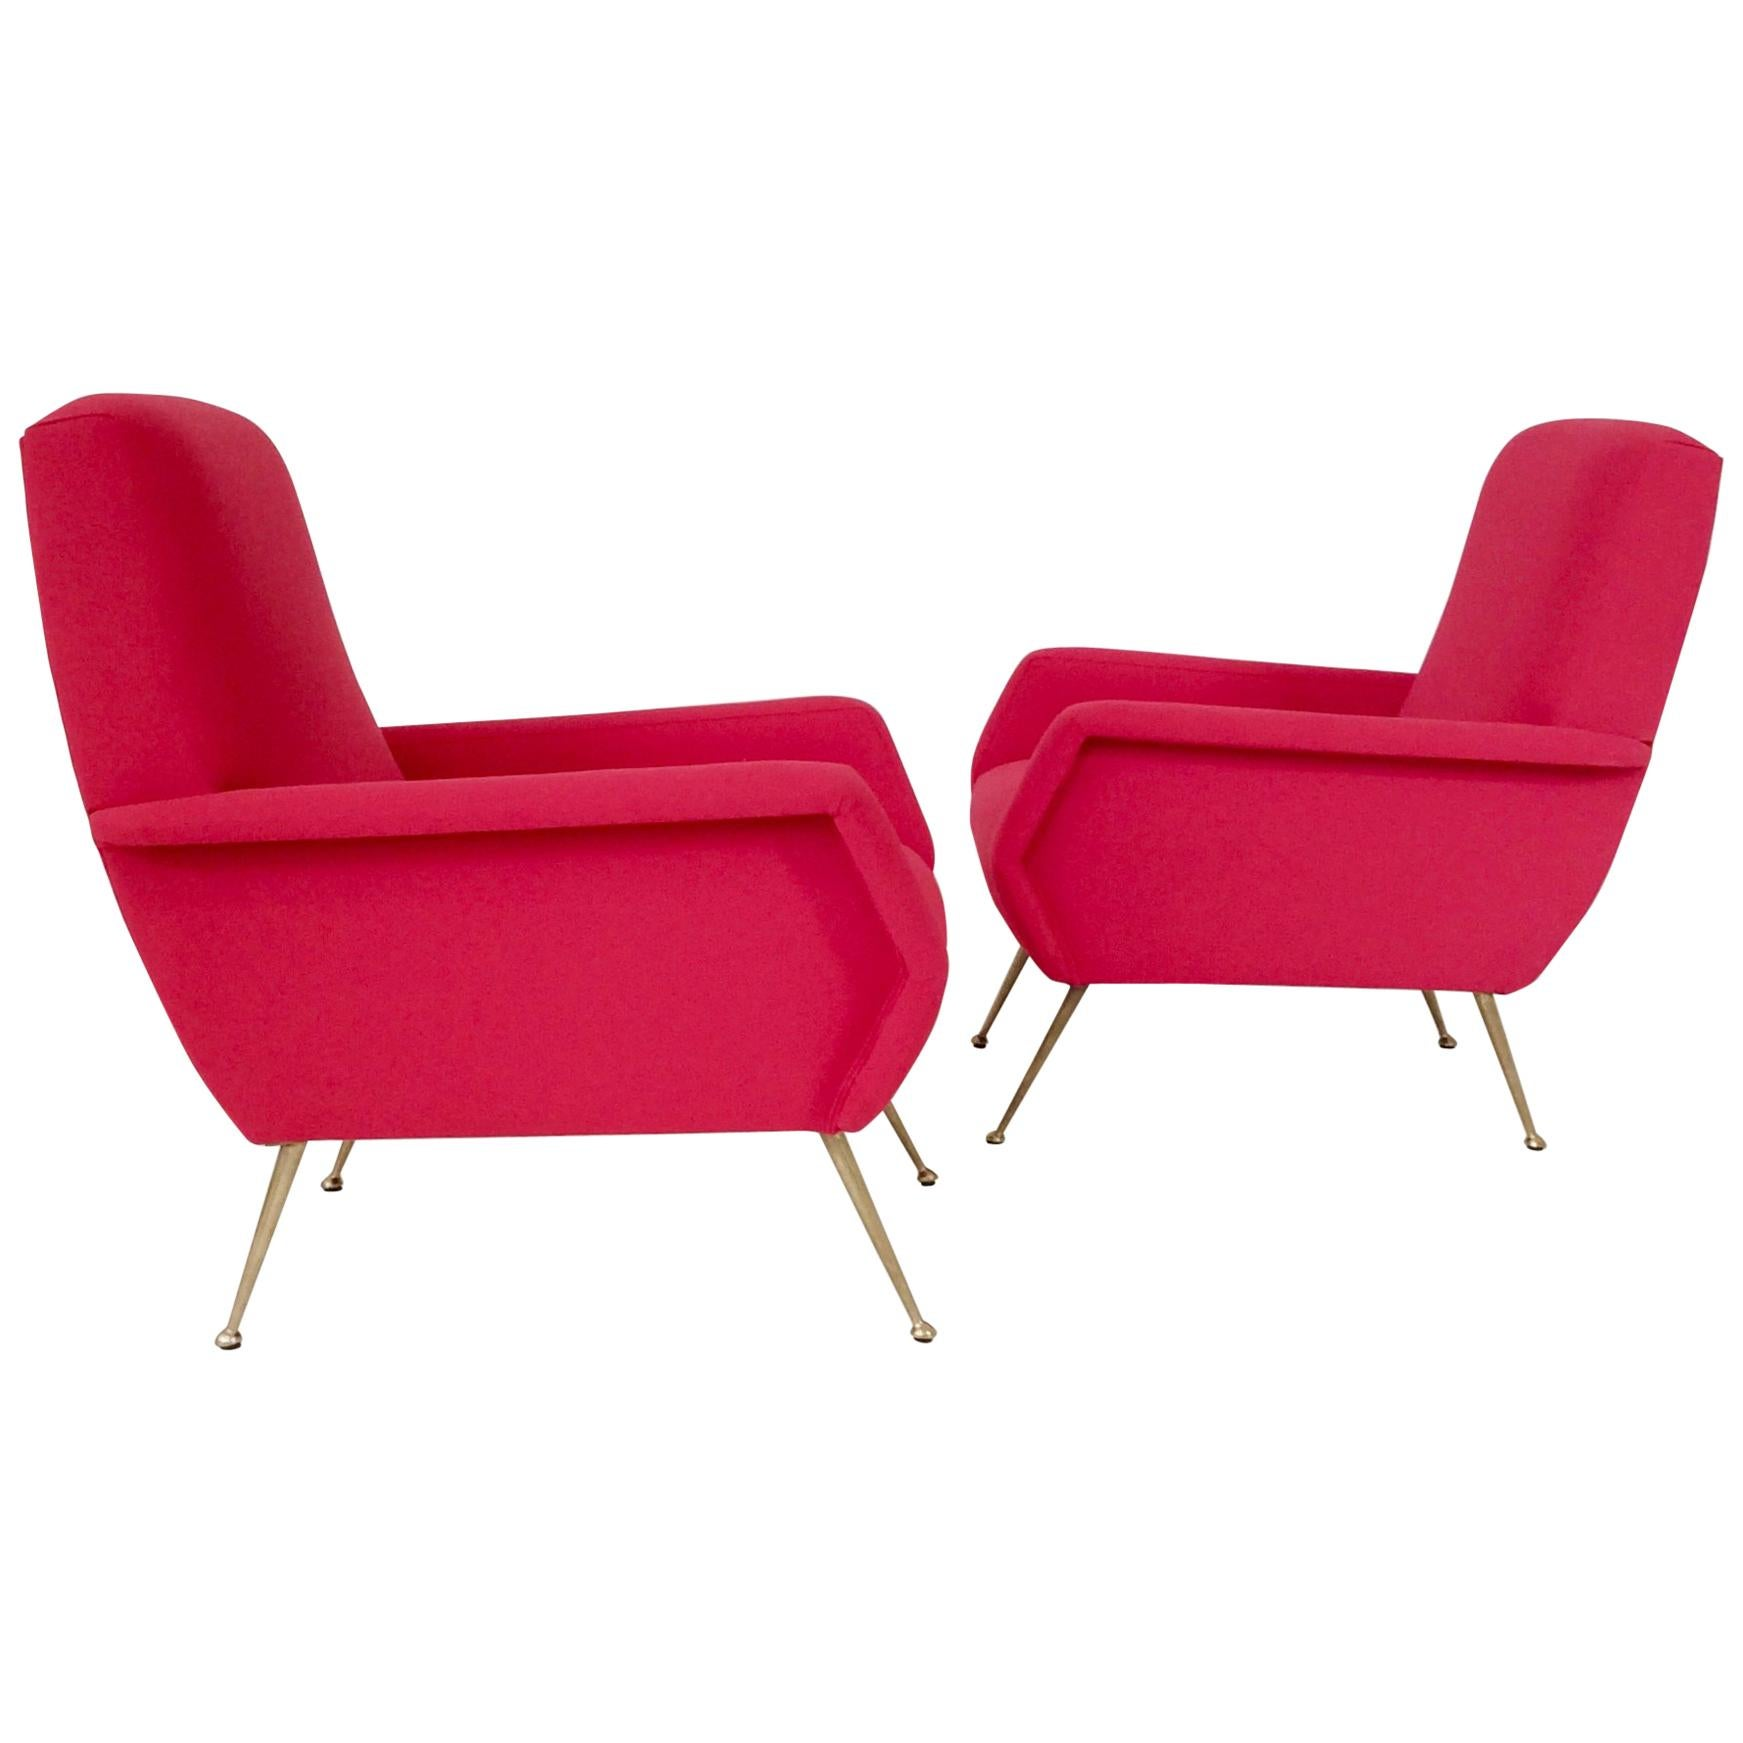 Pair of Red Armchairs, circa 1950, Italy